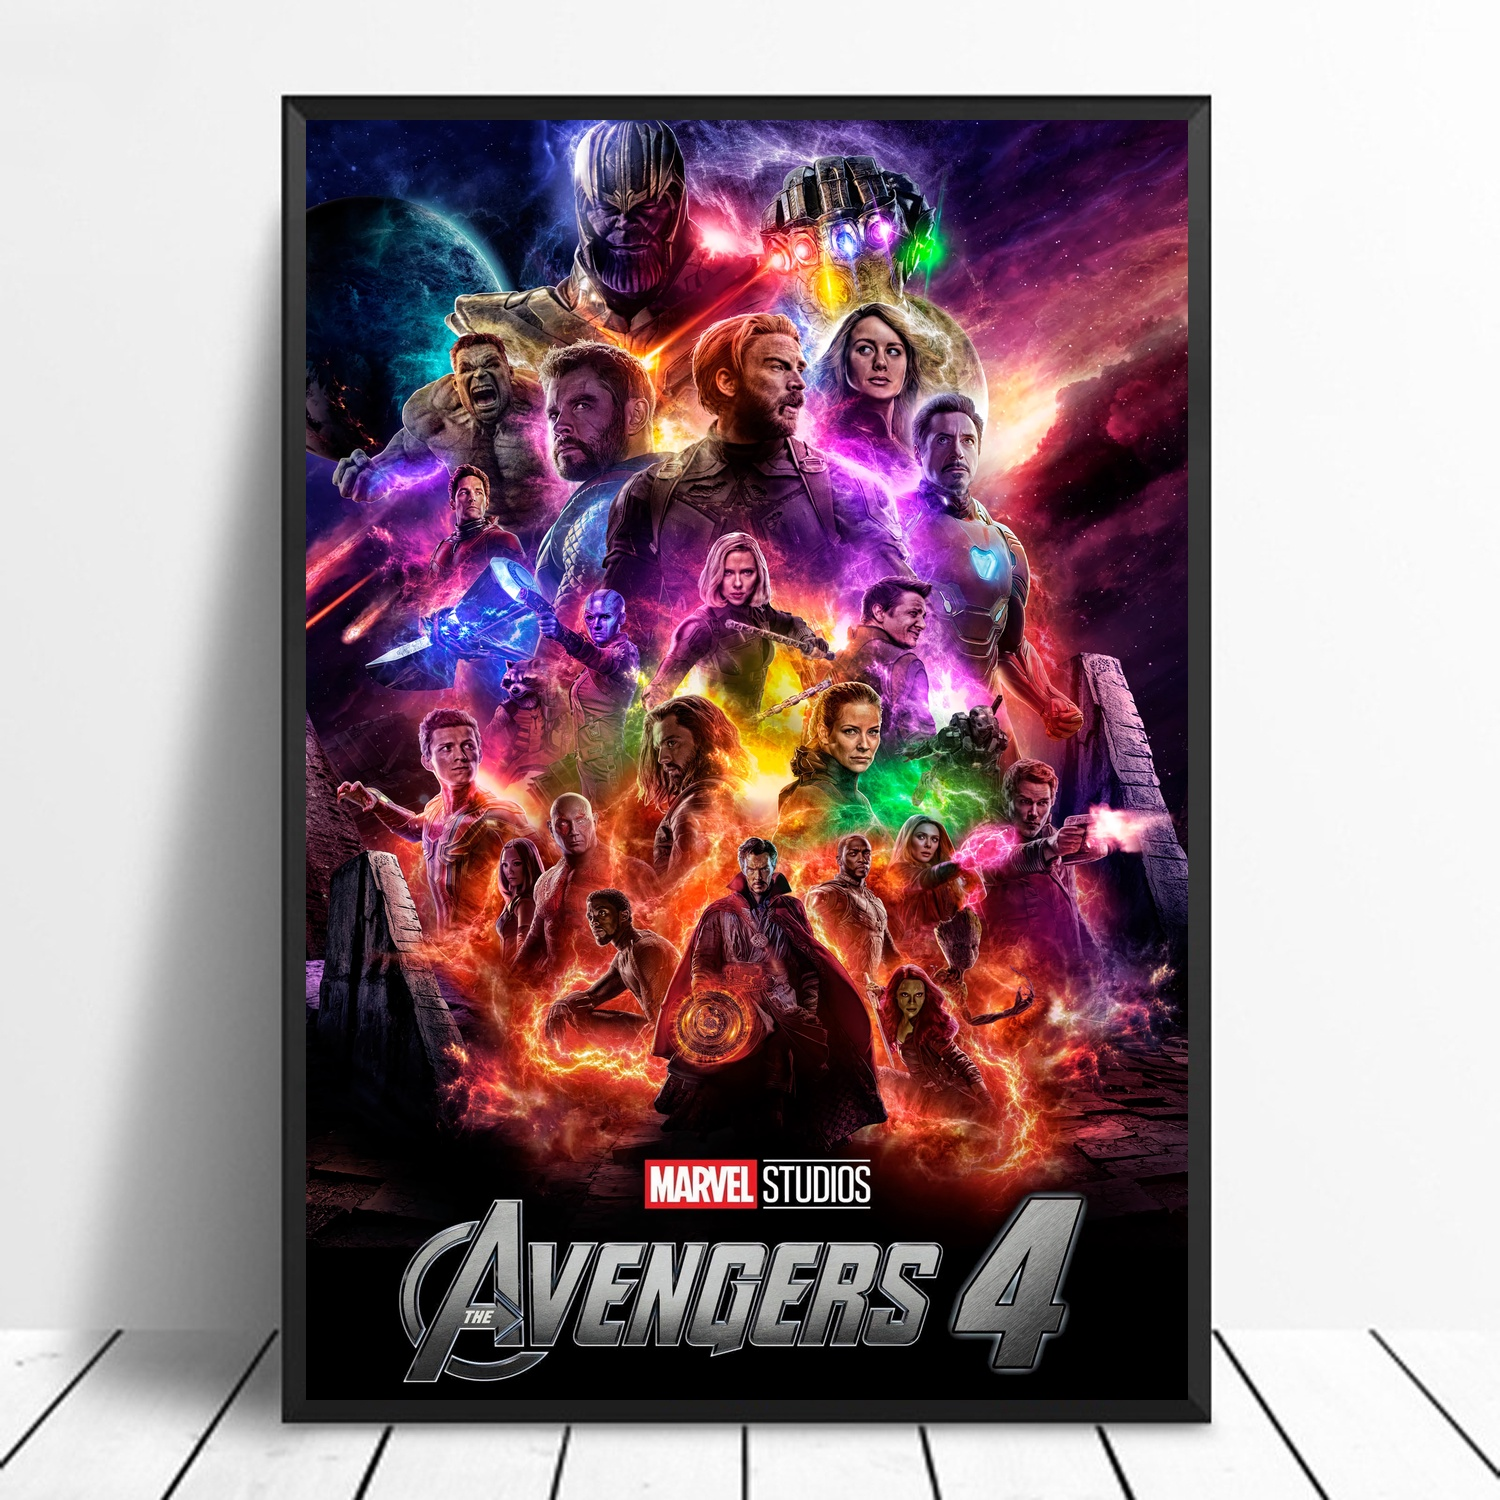 Avengers 4 Endgame Movie Poster Canvas Wall Art Picture